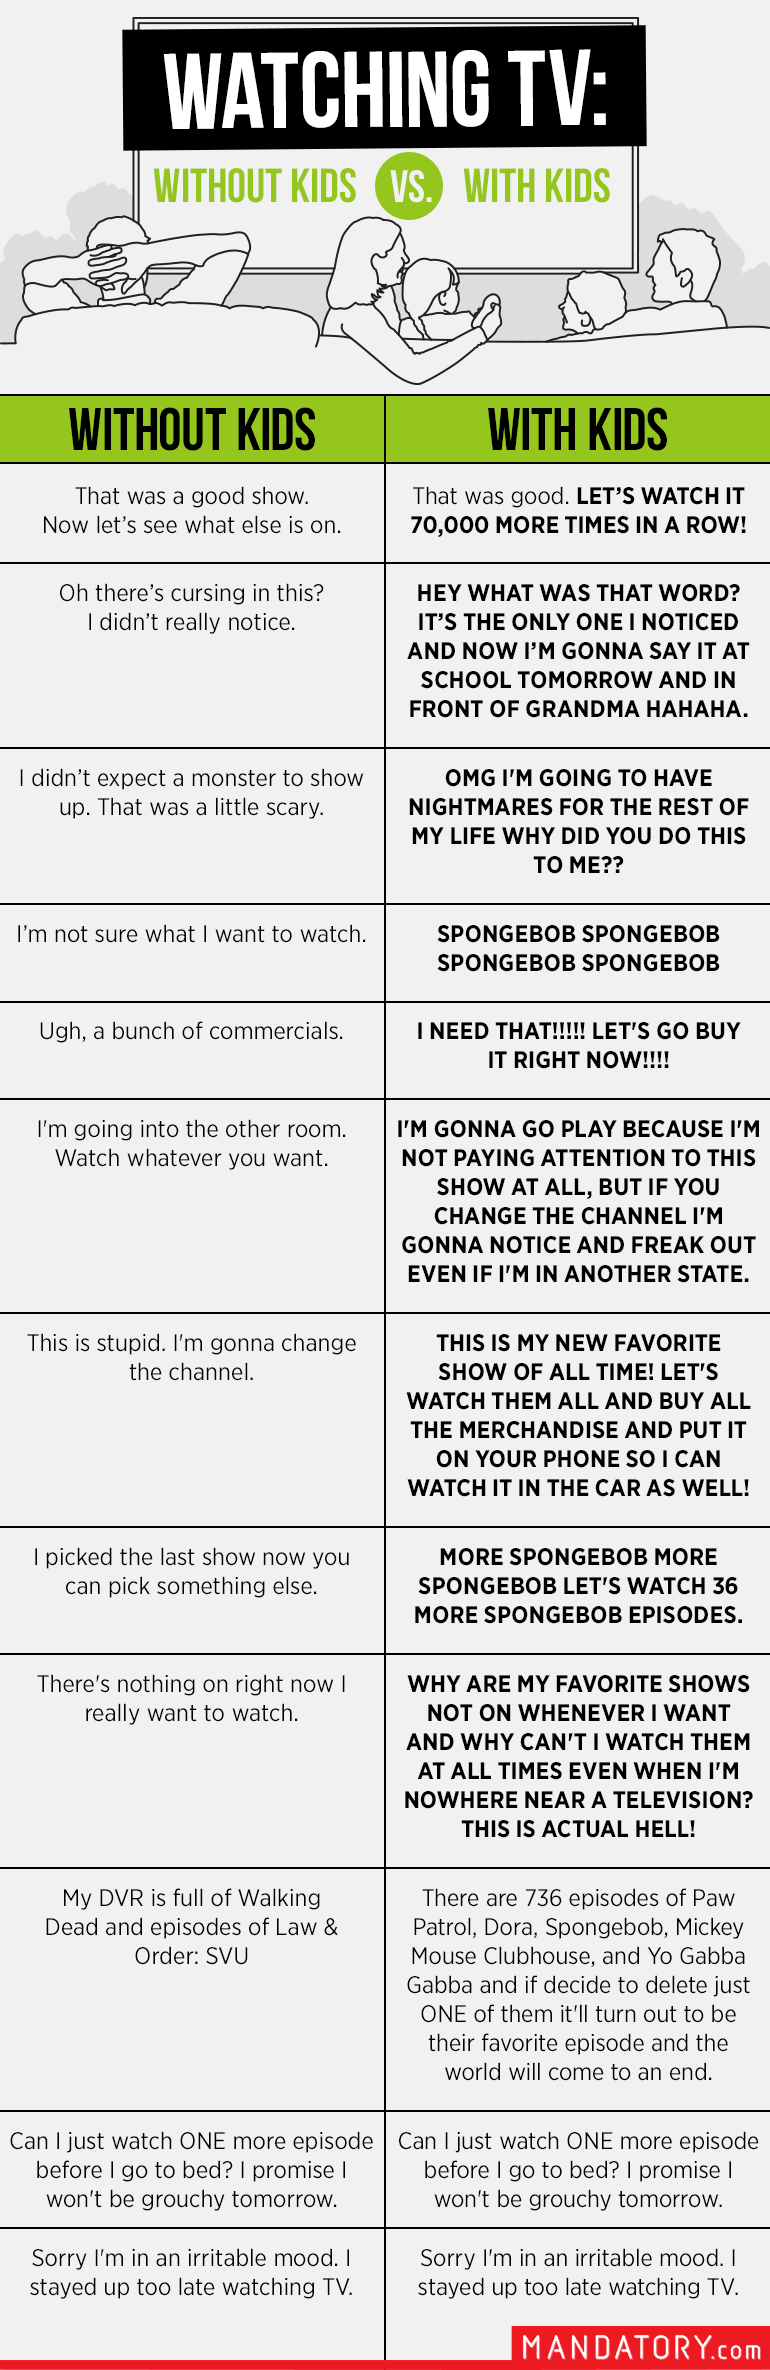 Watching TV Without Kids VS. Watching TV With Your Kids